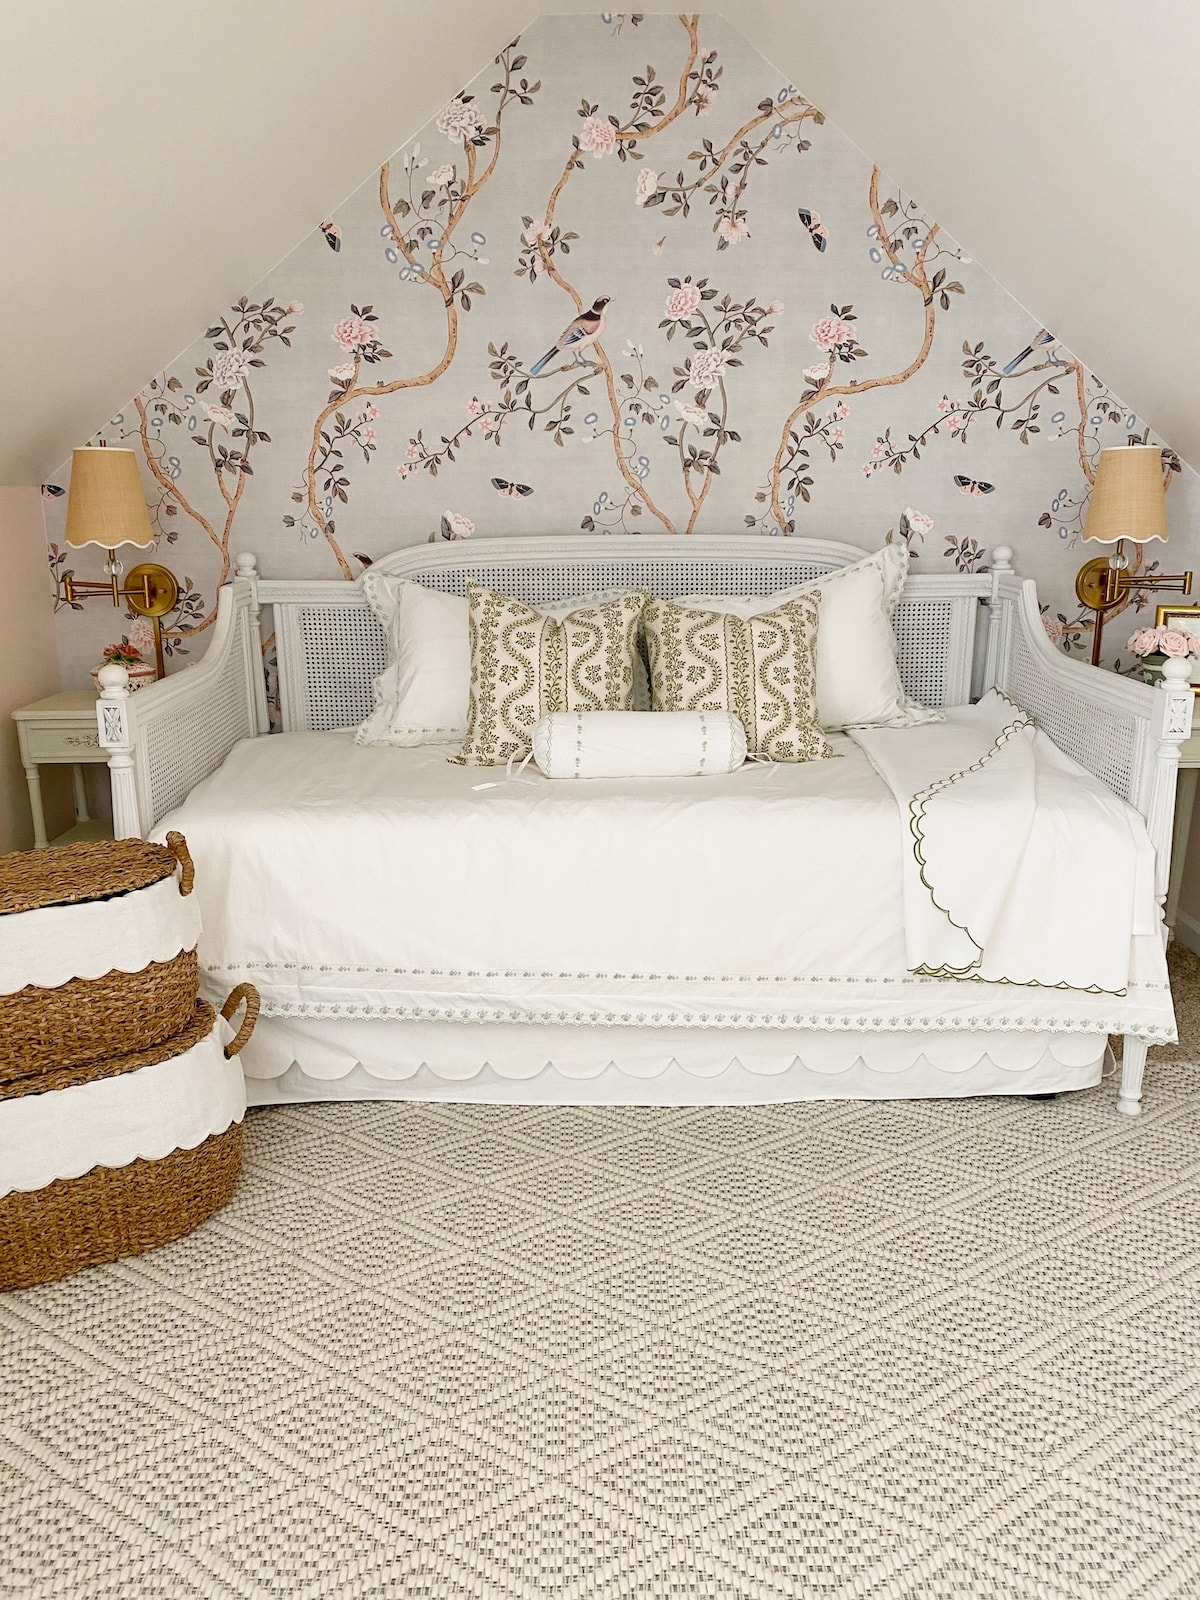 Chinoiserie bedroom with a daybed elegant transitional grandmillennial home